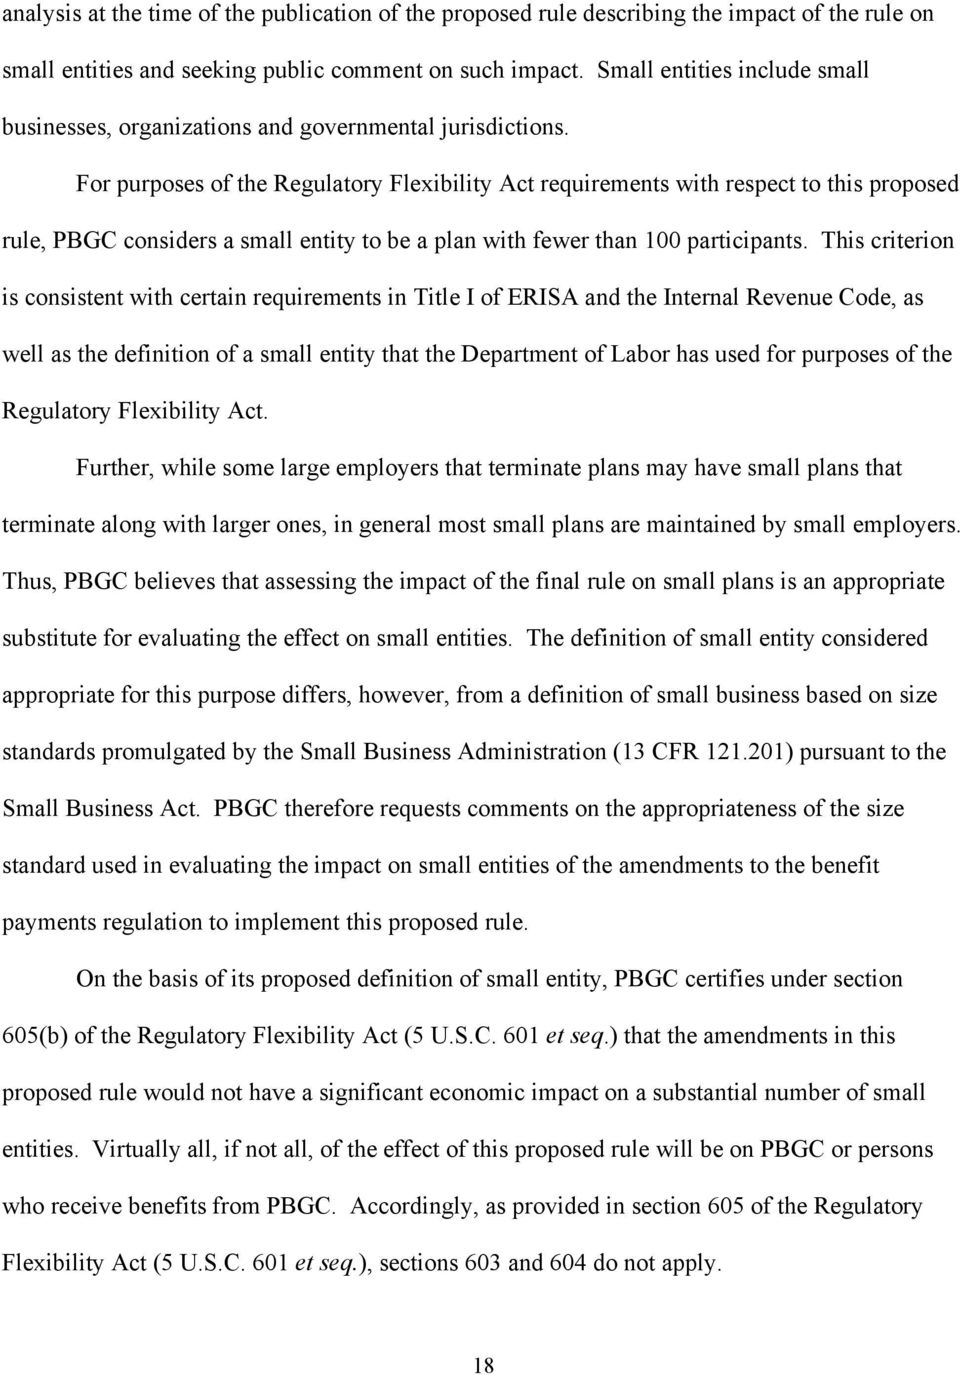 For purposes of the Regulatory Flexibility Act requirements with respect to this proposed rule, PBGC considers a small entity to be a plan with fewer than 100 participants.